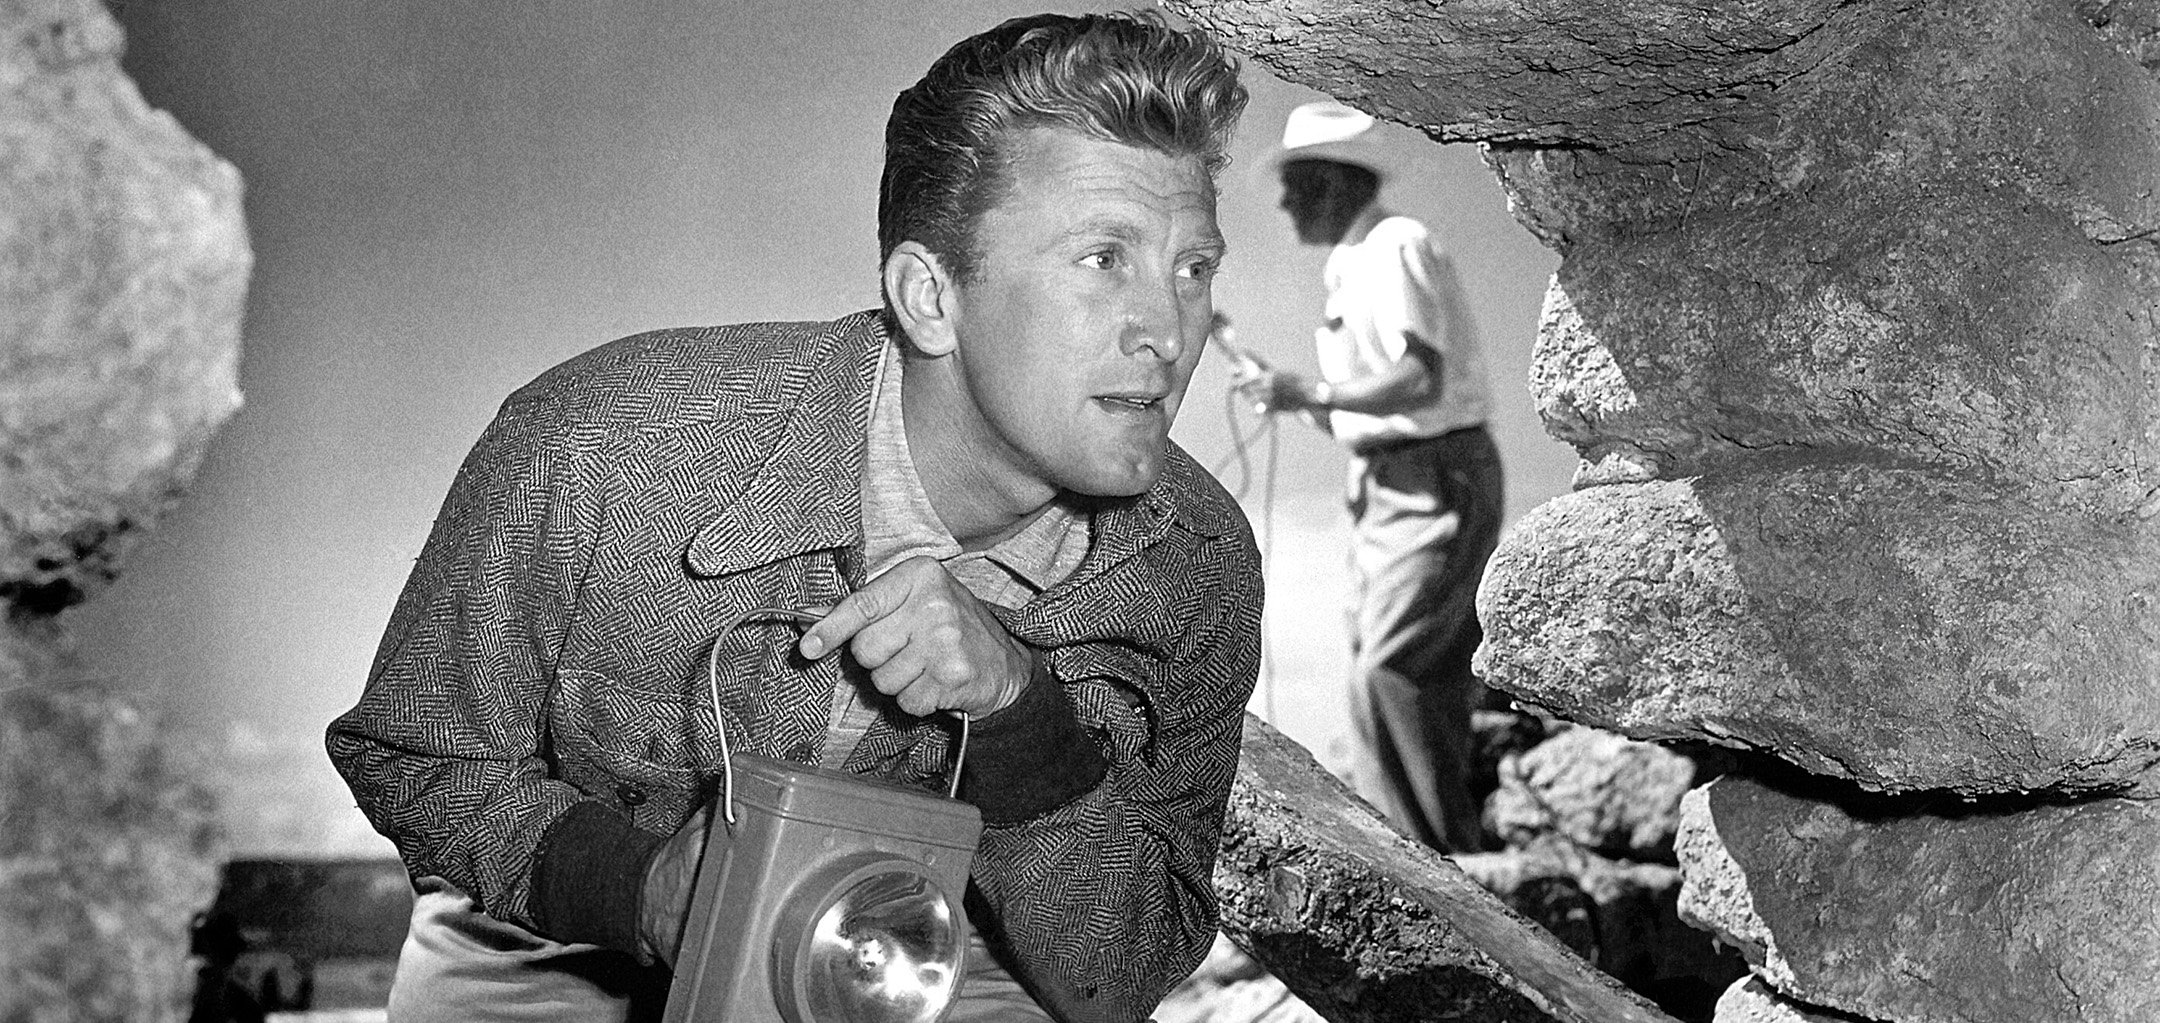 Kirk Douglas in a still from Ace in the Hole (1951)